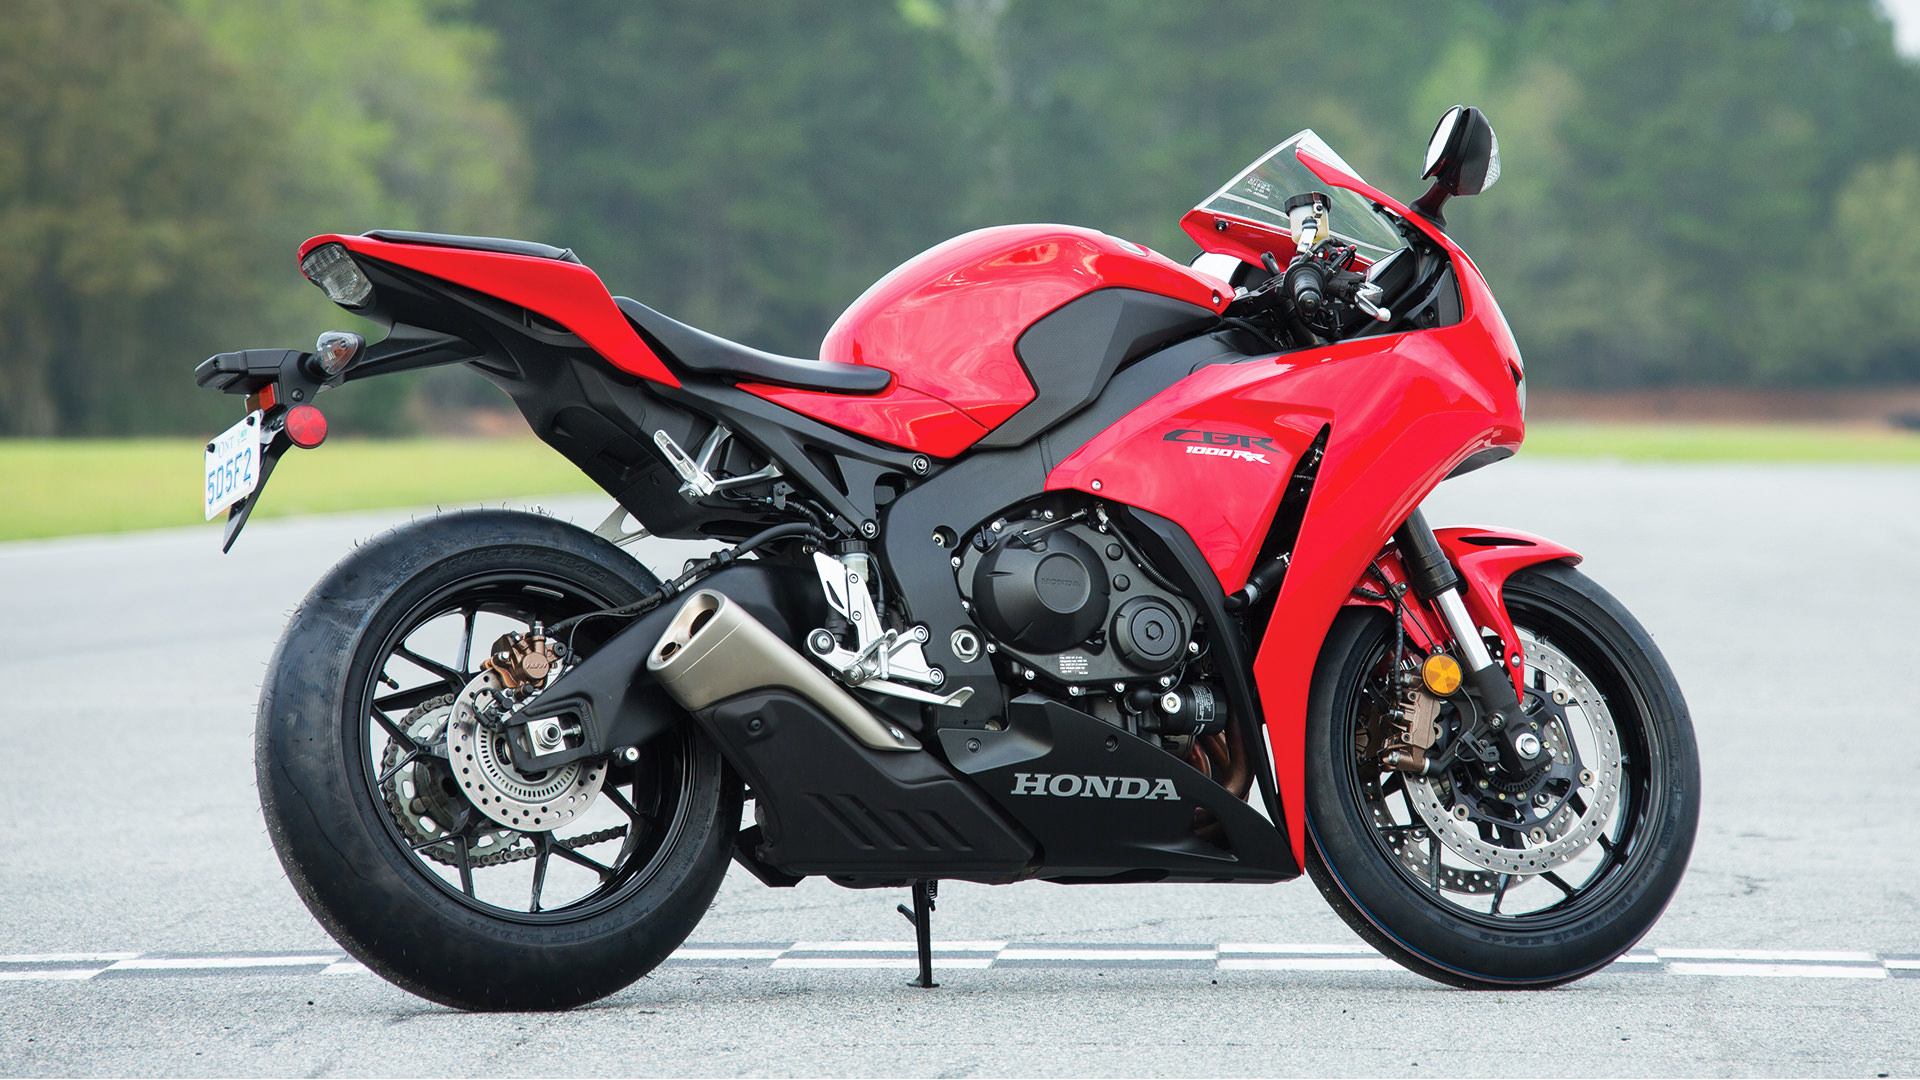 Honda Cbr1000rr Review >> 2016 Honda Cbr1000rr Review Specs Pictures Videos Honda Pro